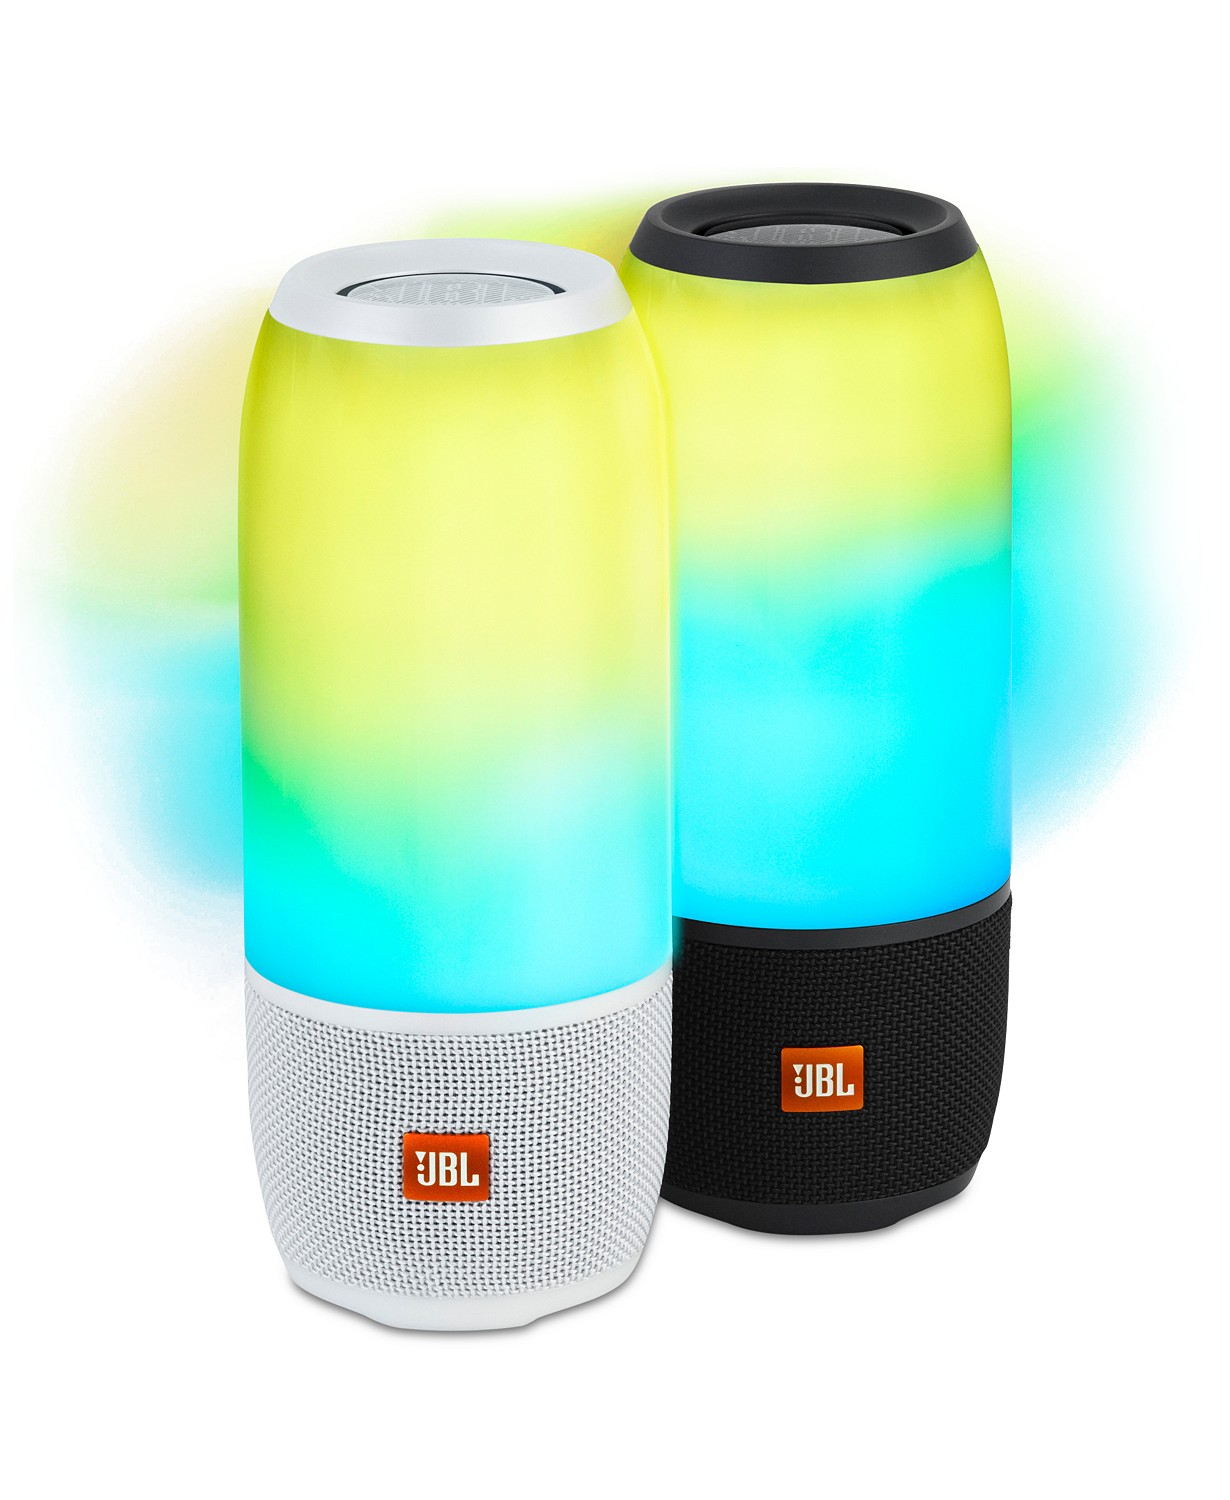 JBL Pulse 3 Light-Up Waterproof Bluetooth Speaker